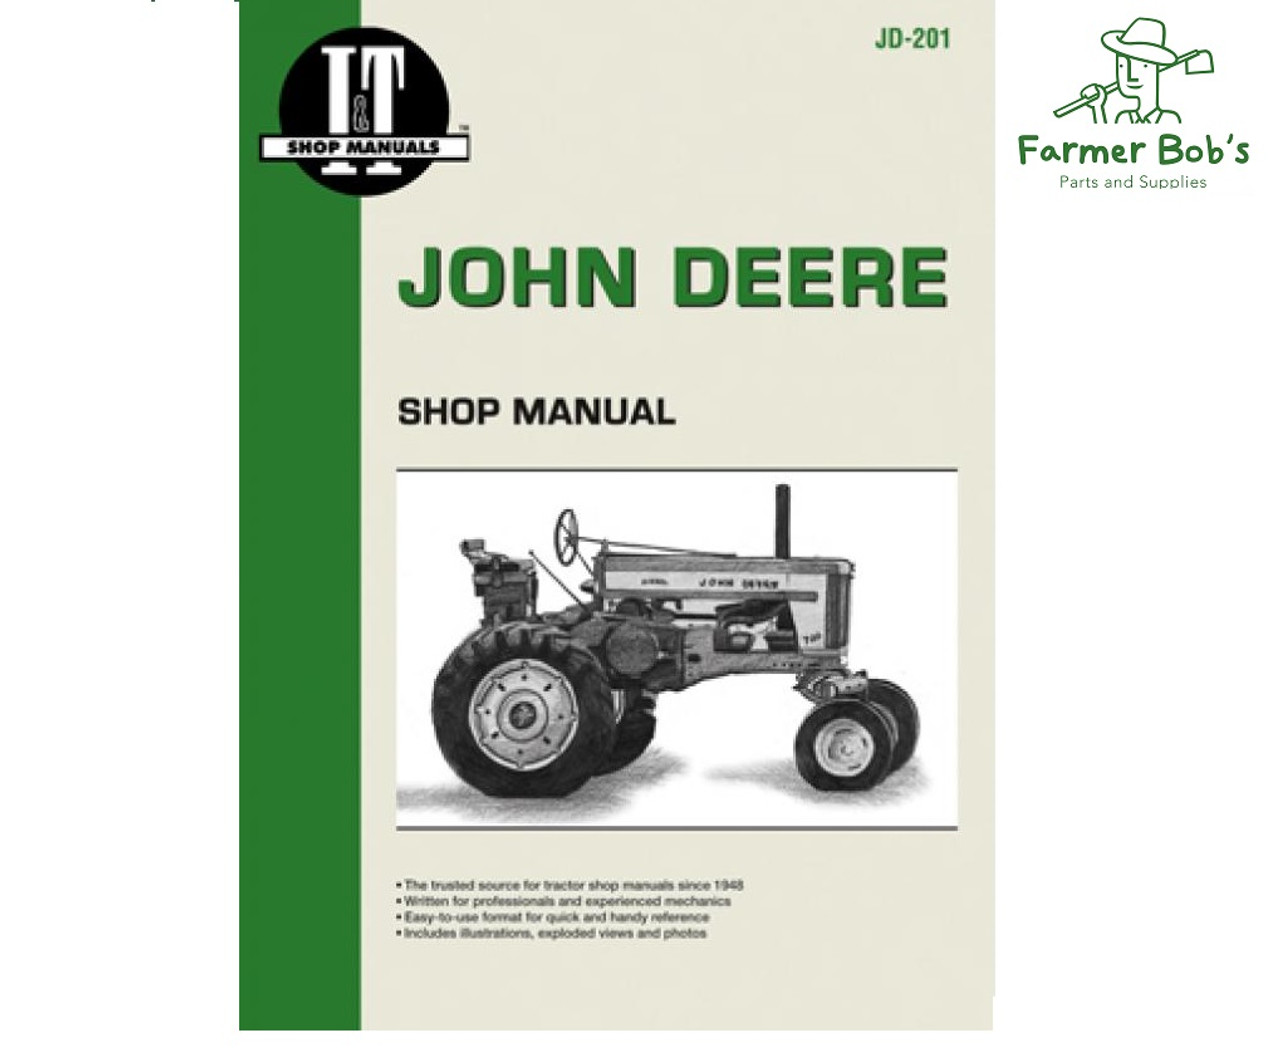 wiring diagram for 720 john deere tractor jd201 i t shop manuals john deere 720 diesel  730 diesel  series  i t shop manuals john deere 720 diesel